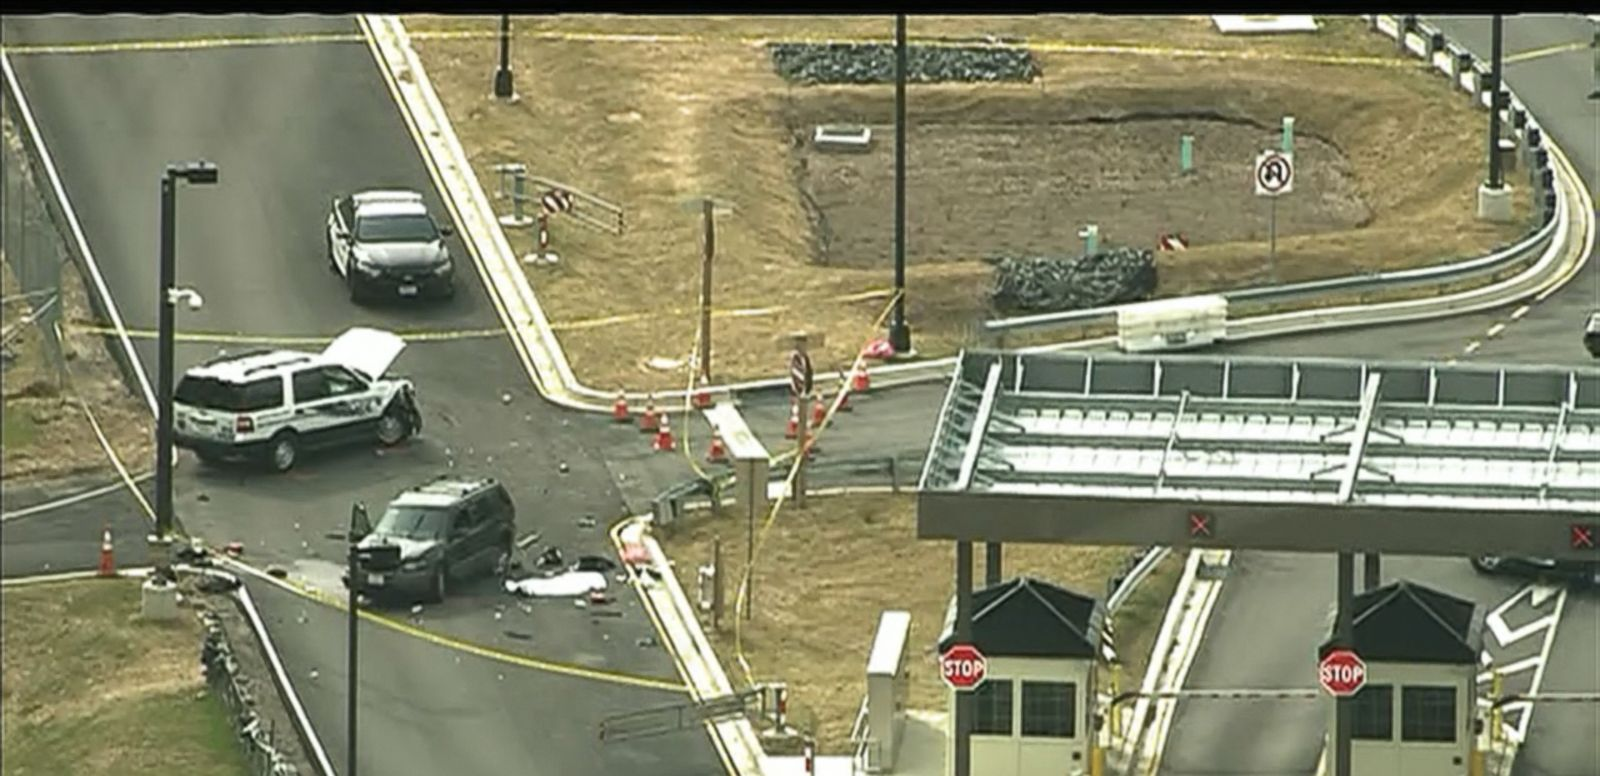 VIDEO: One man is dead and another seriously injured after a shootout at one of the main gates of the National Security Agency located at Fort Meade, Maryland.